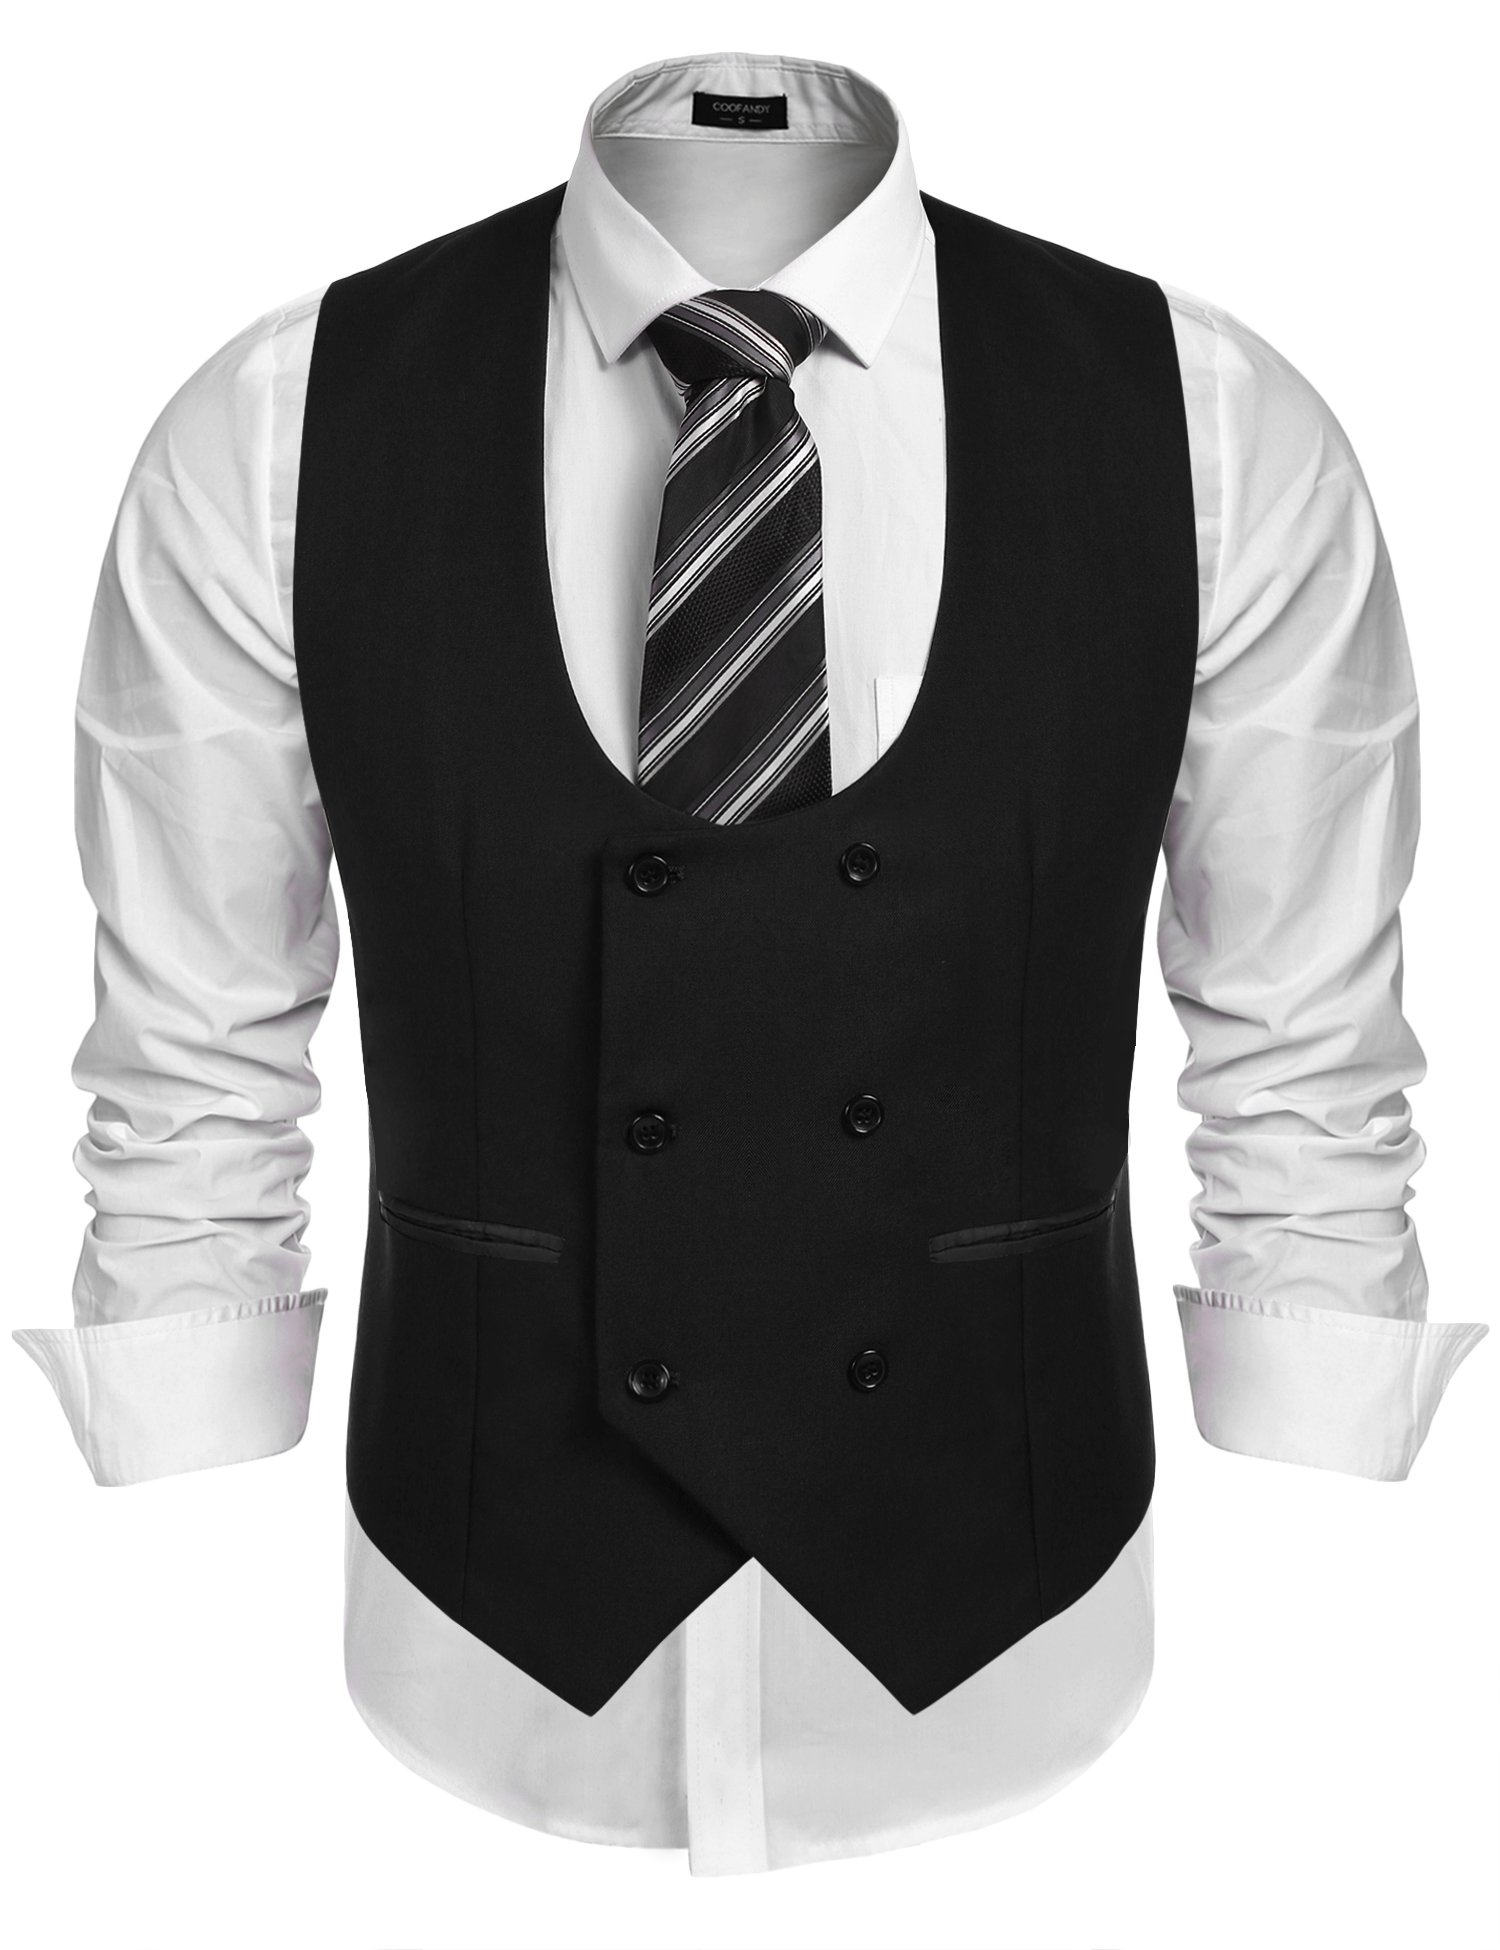 COOFANDY Men's Slim Fit Sleeveless Suit Vest Double Breasted Business Dress Waistcoat 3